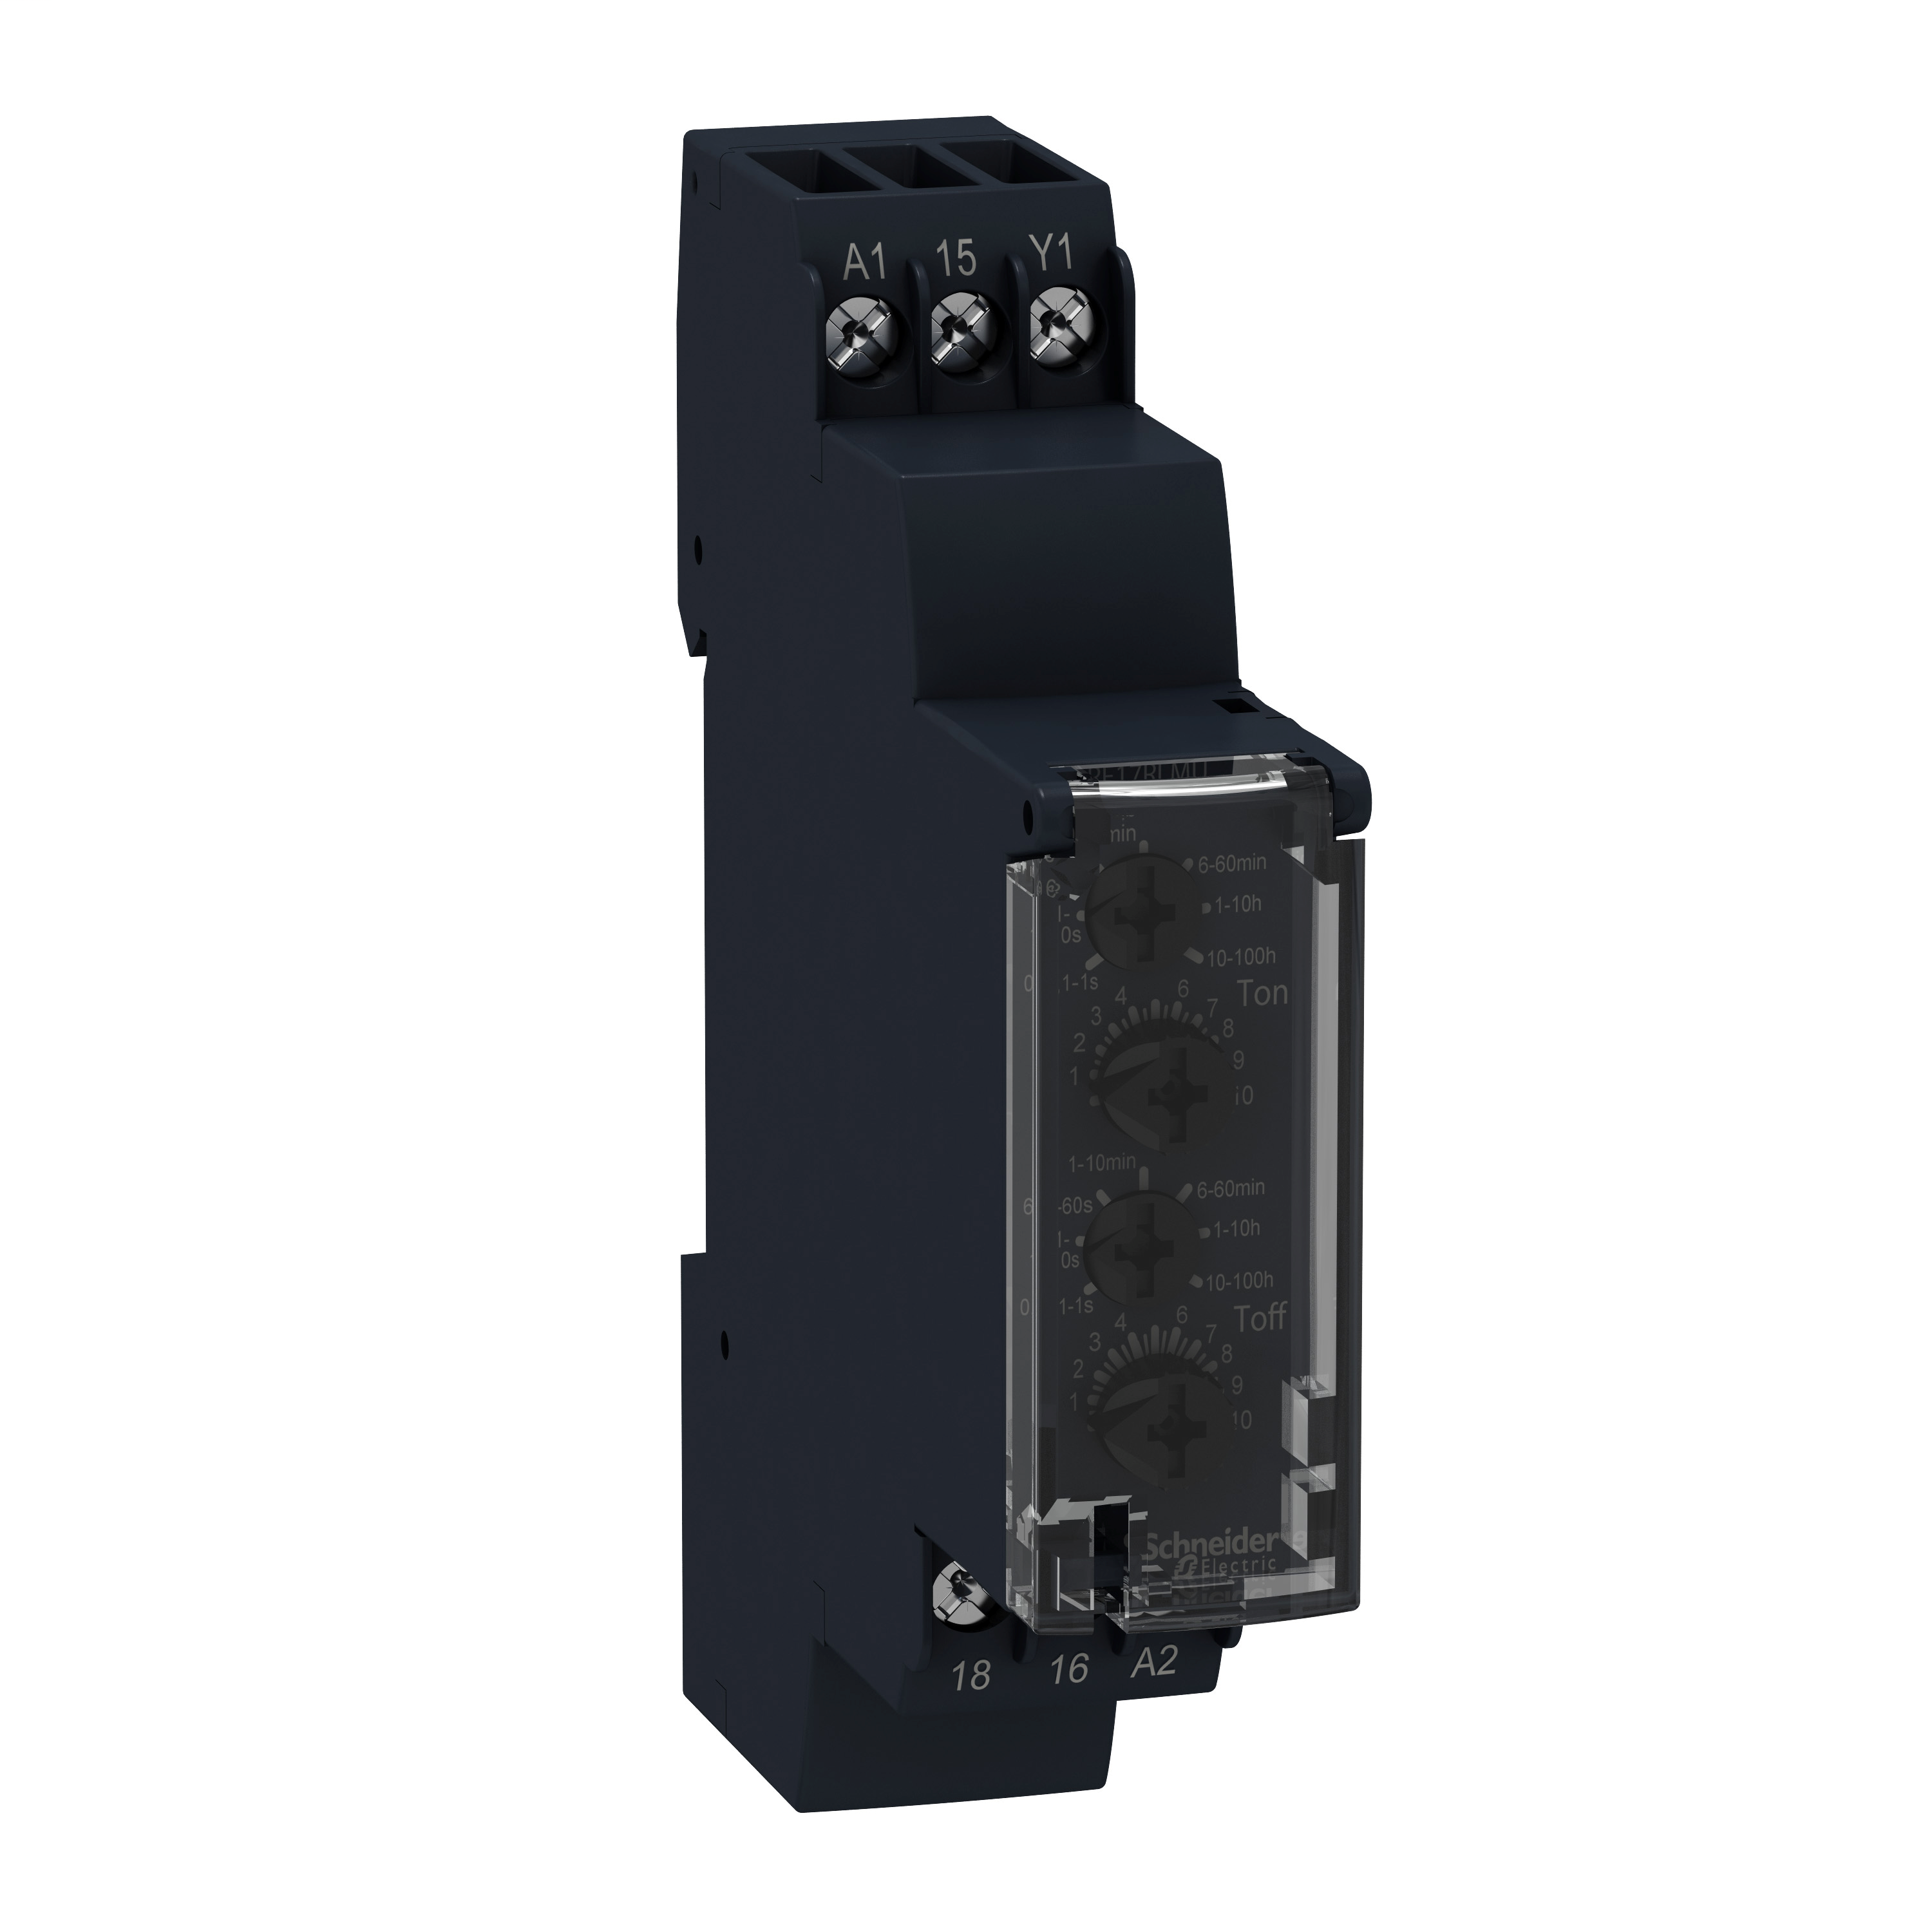 SCHNEIDER ELECTRIC Modular timing relay, 8 A, 1 CO, 1 s..100 h, asymmetrical flashing, 24...240 V AC